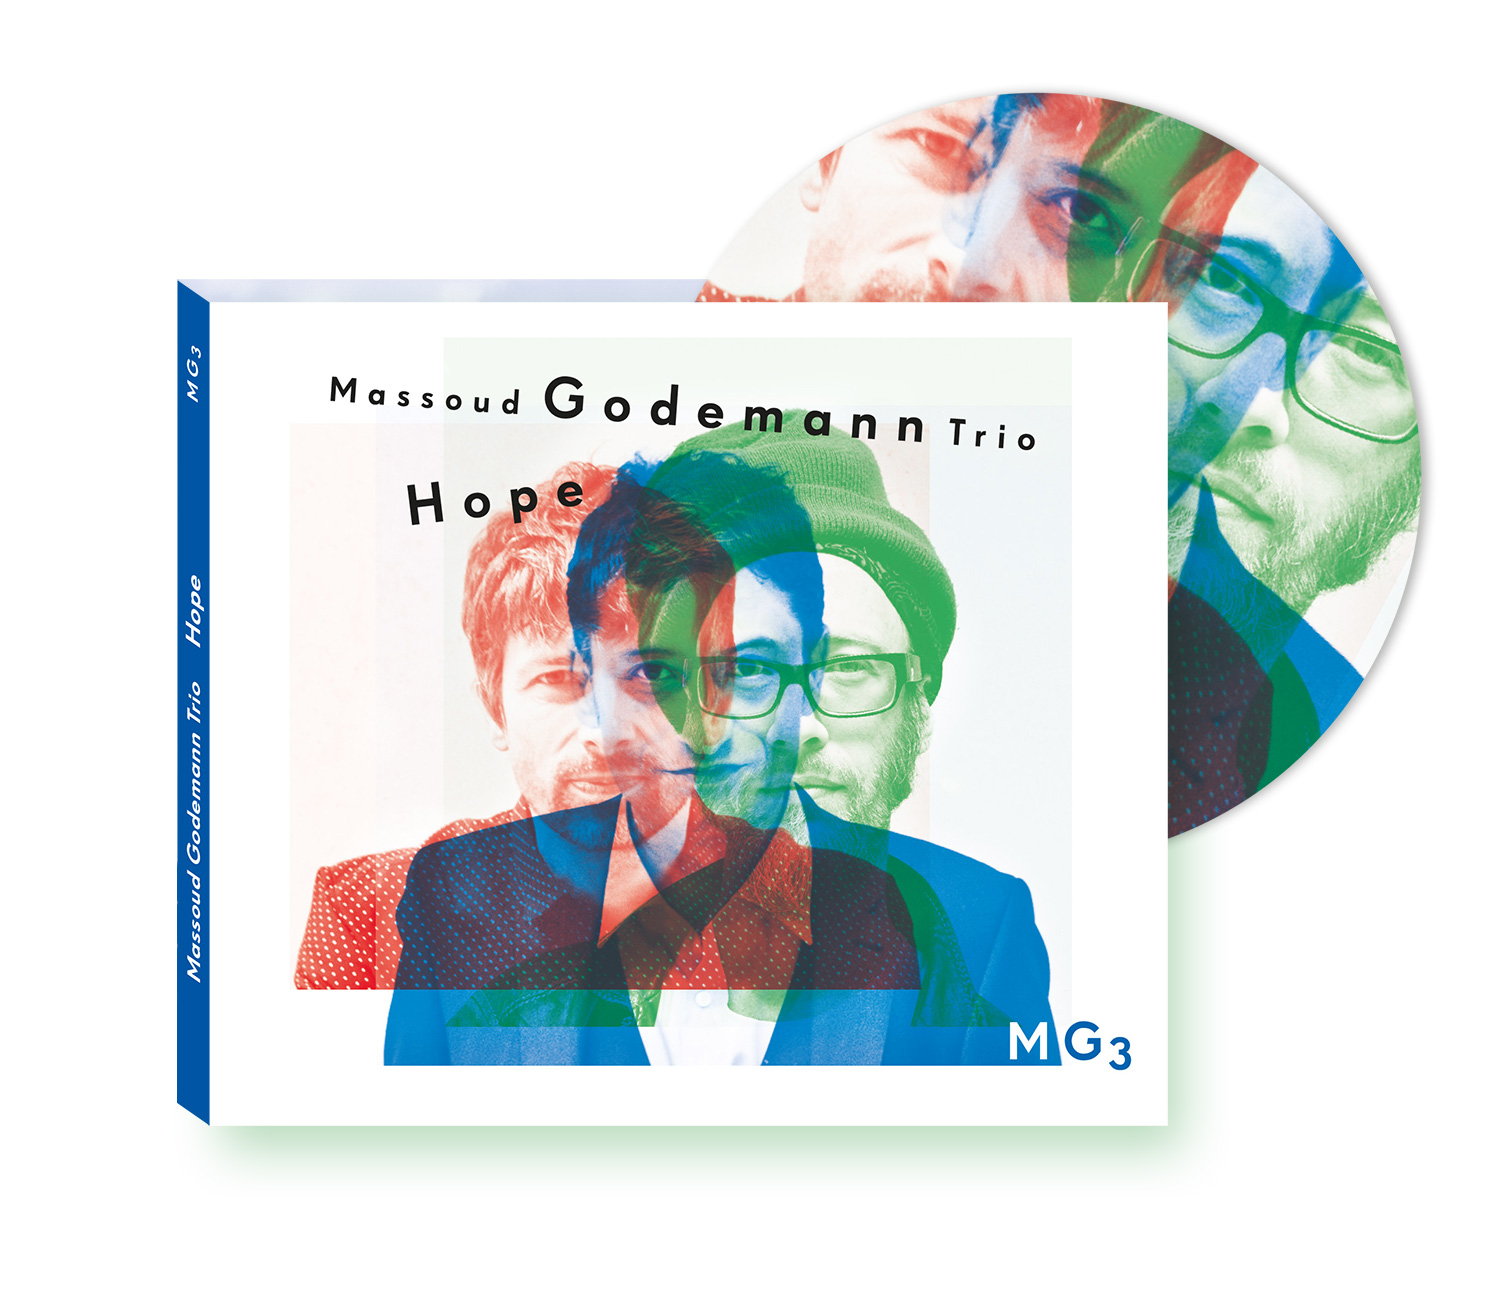 MG3_digipak_hope